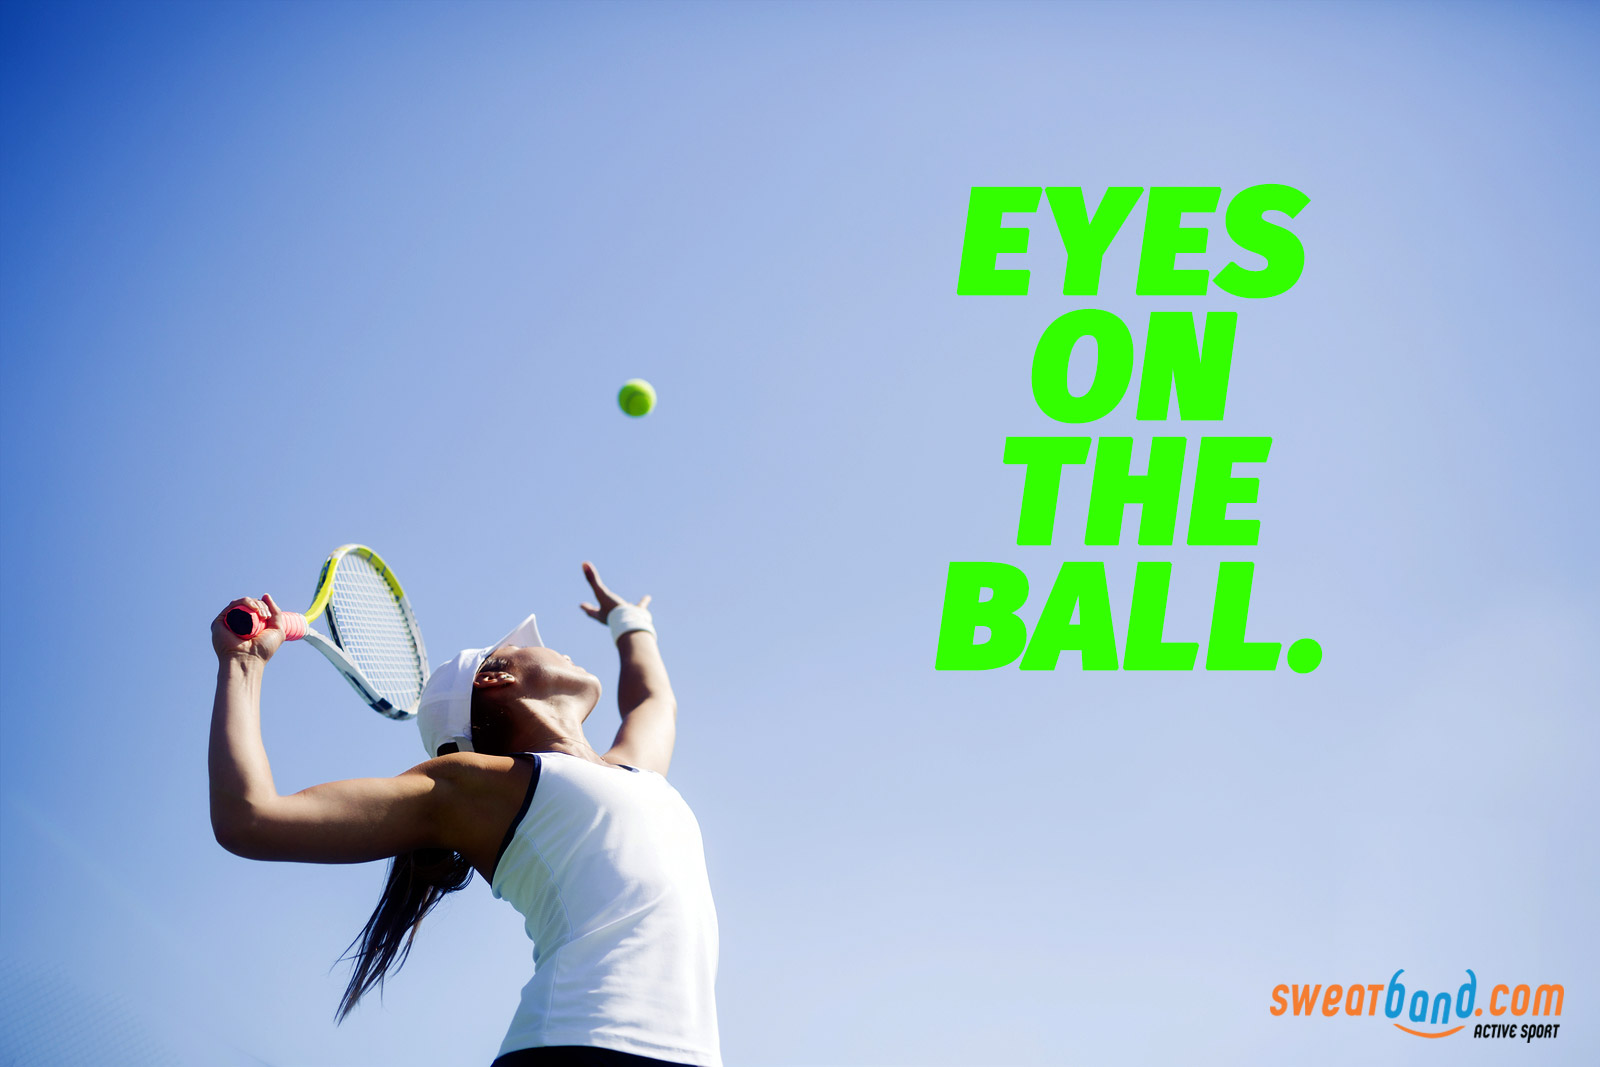 Keep your eyes on the ball and take your game to the next level